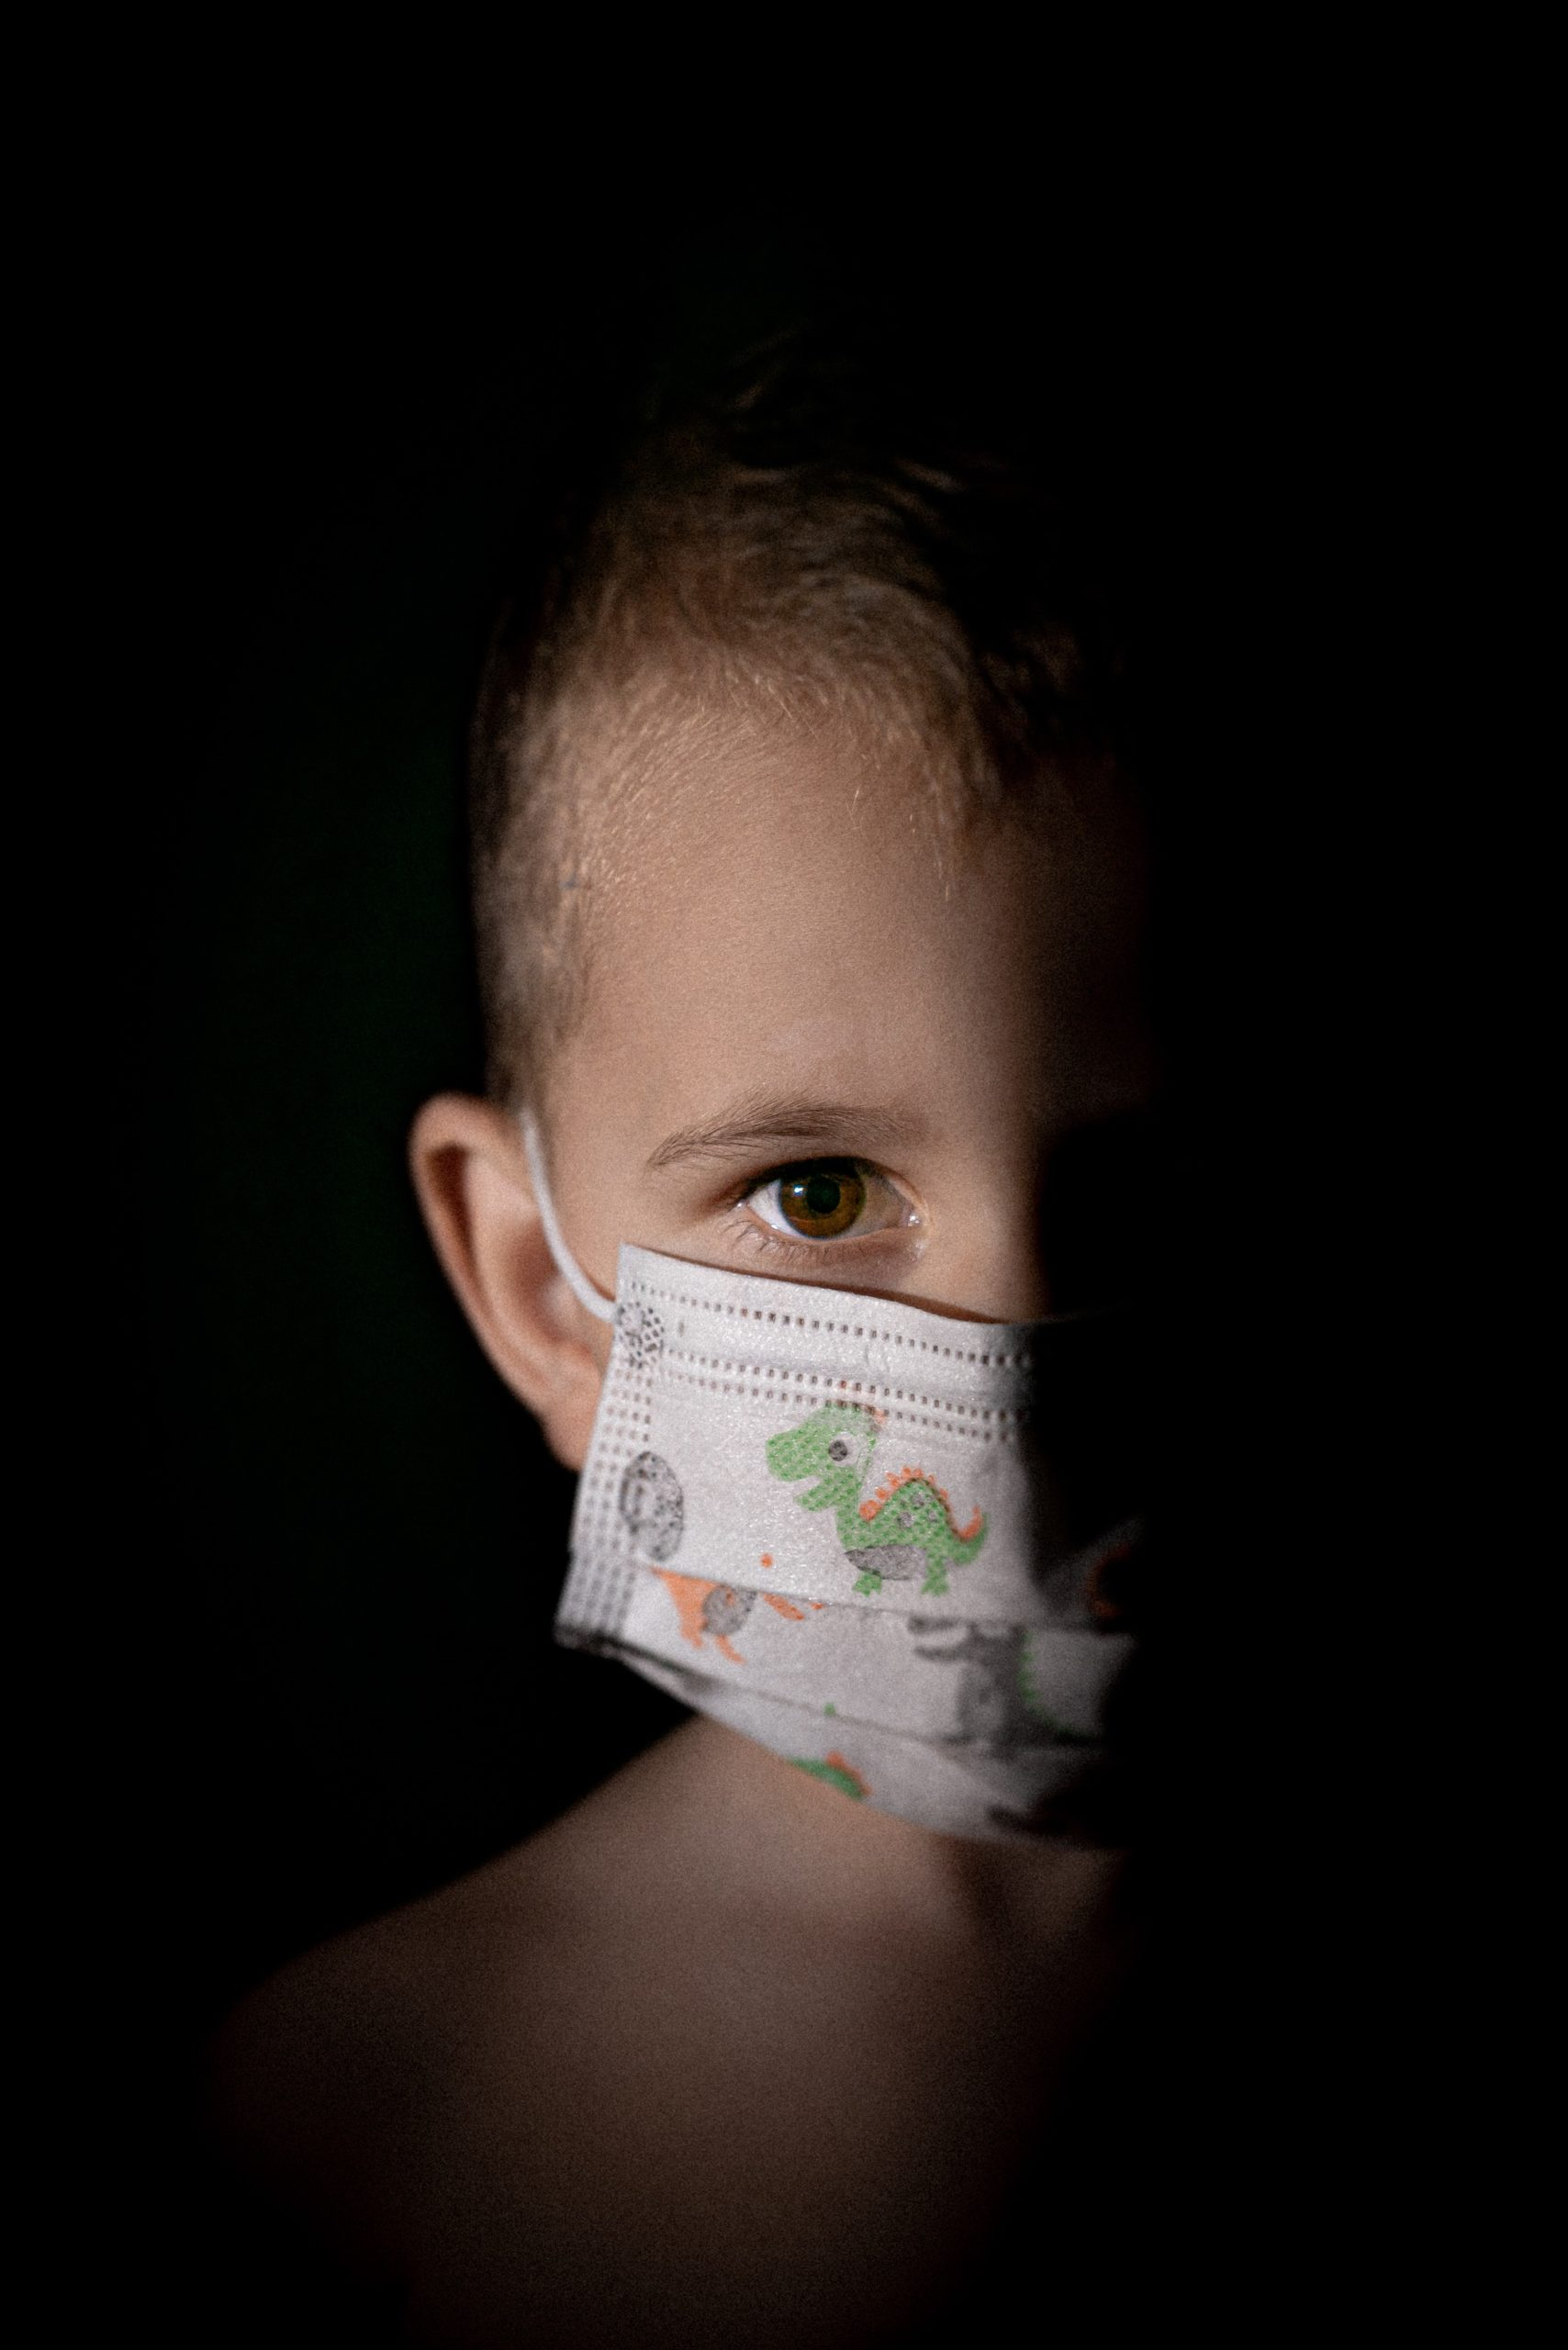 child wearing a covid-19 mask for protection